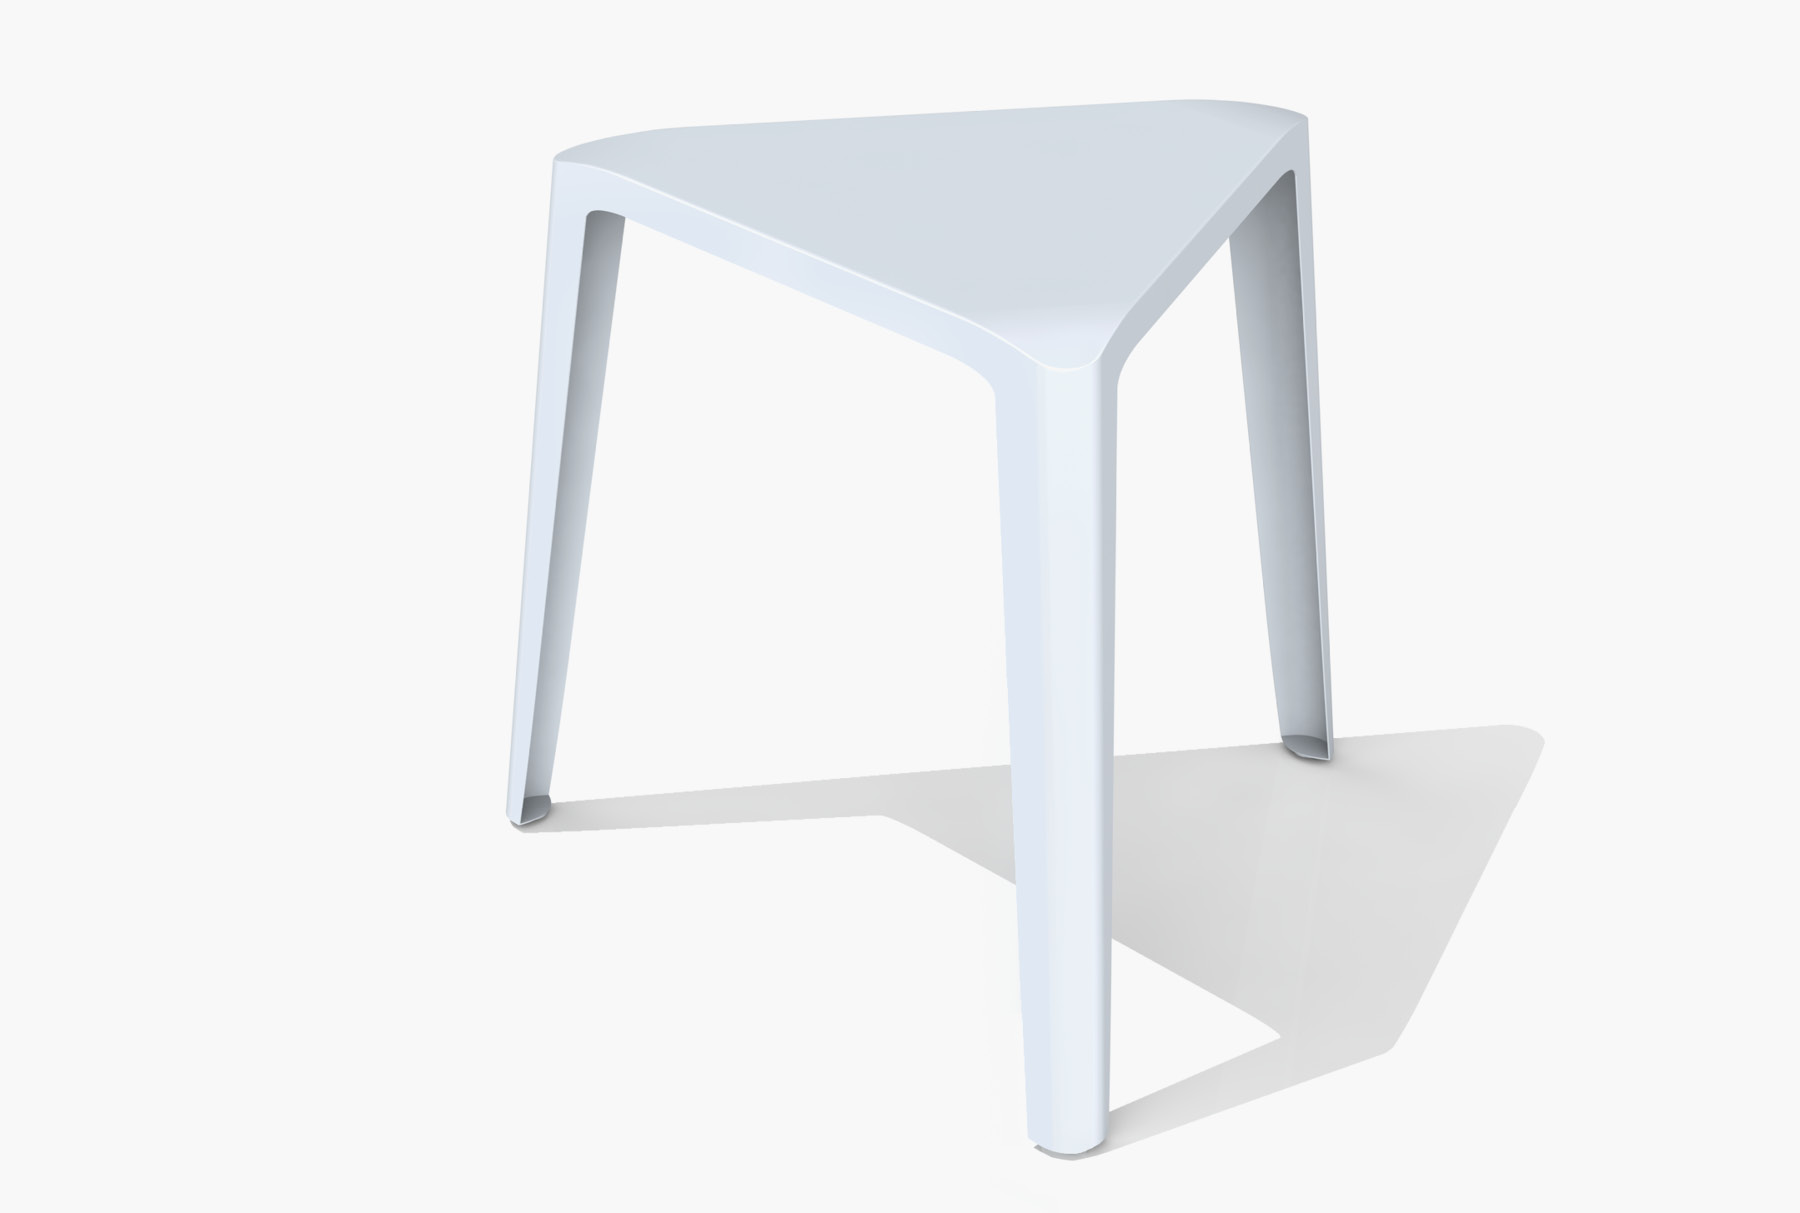 Arktura Clic Low Stool in Glacier Gray